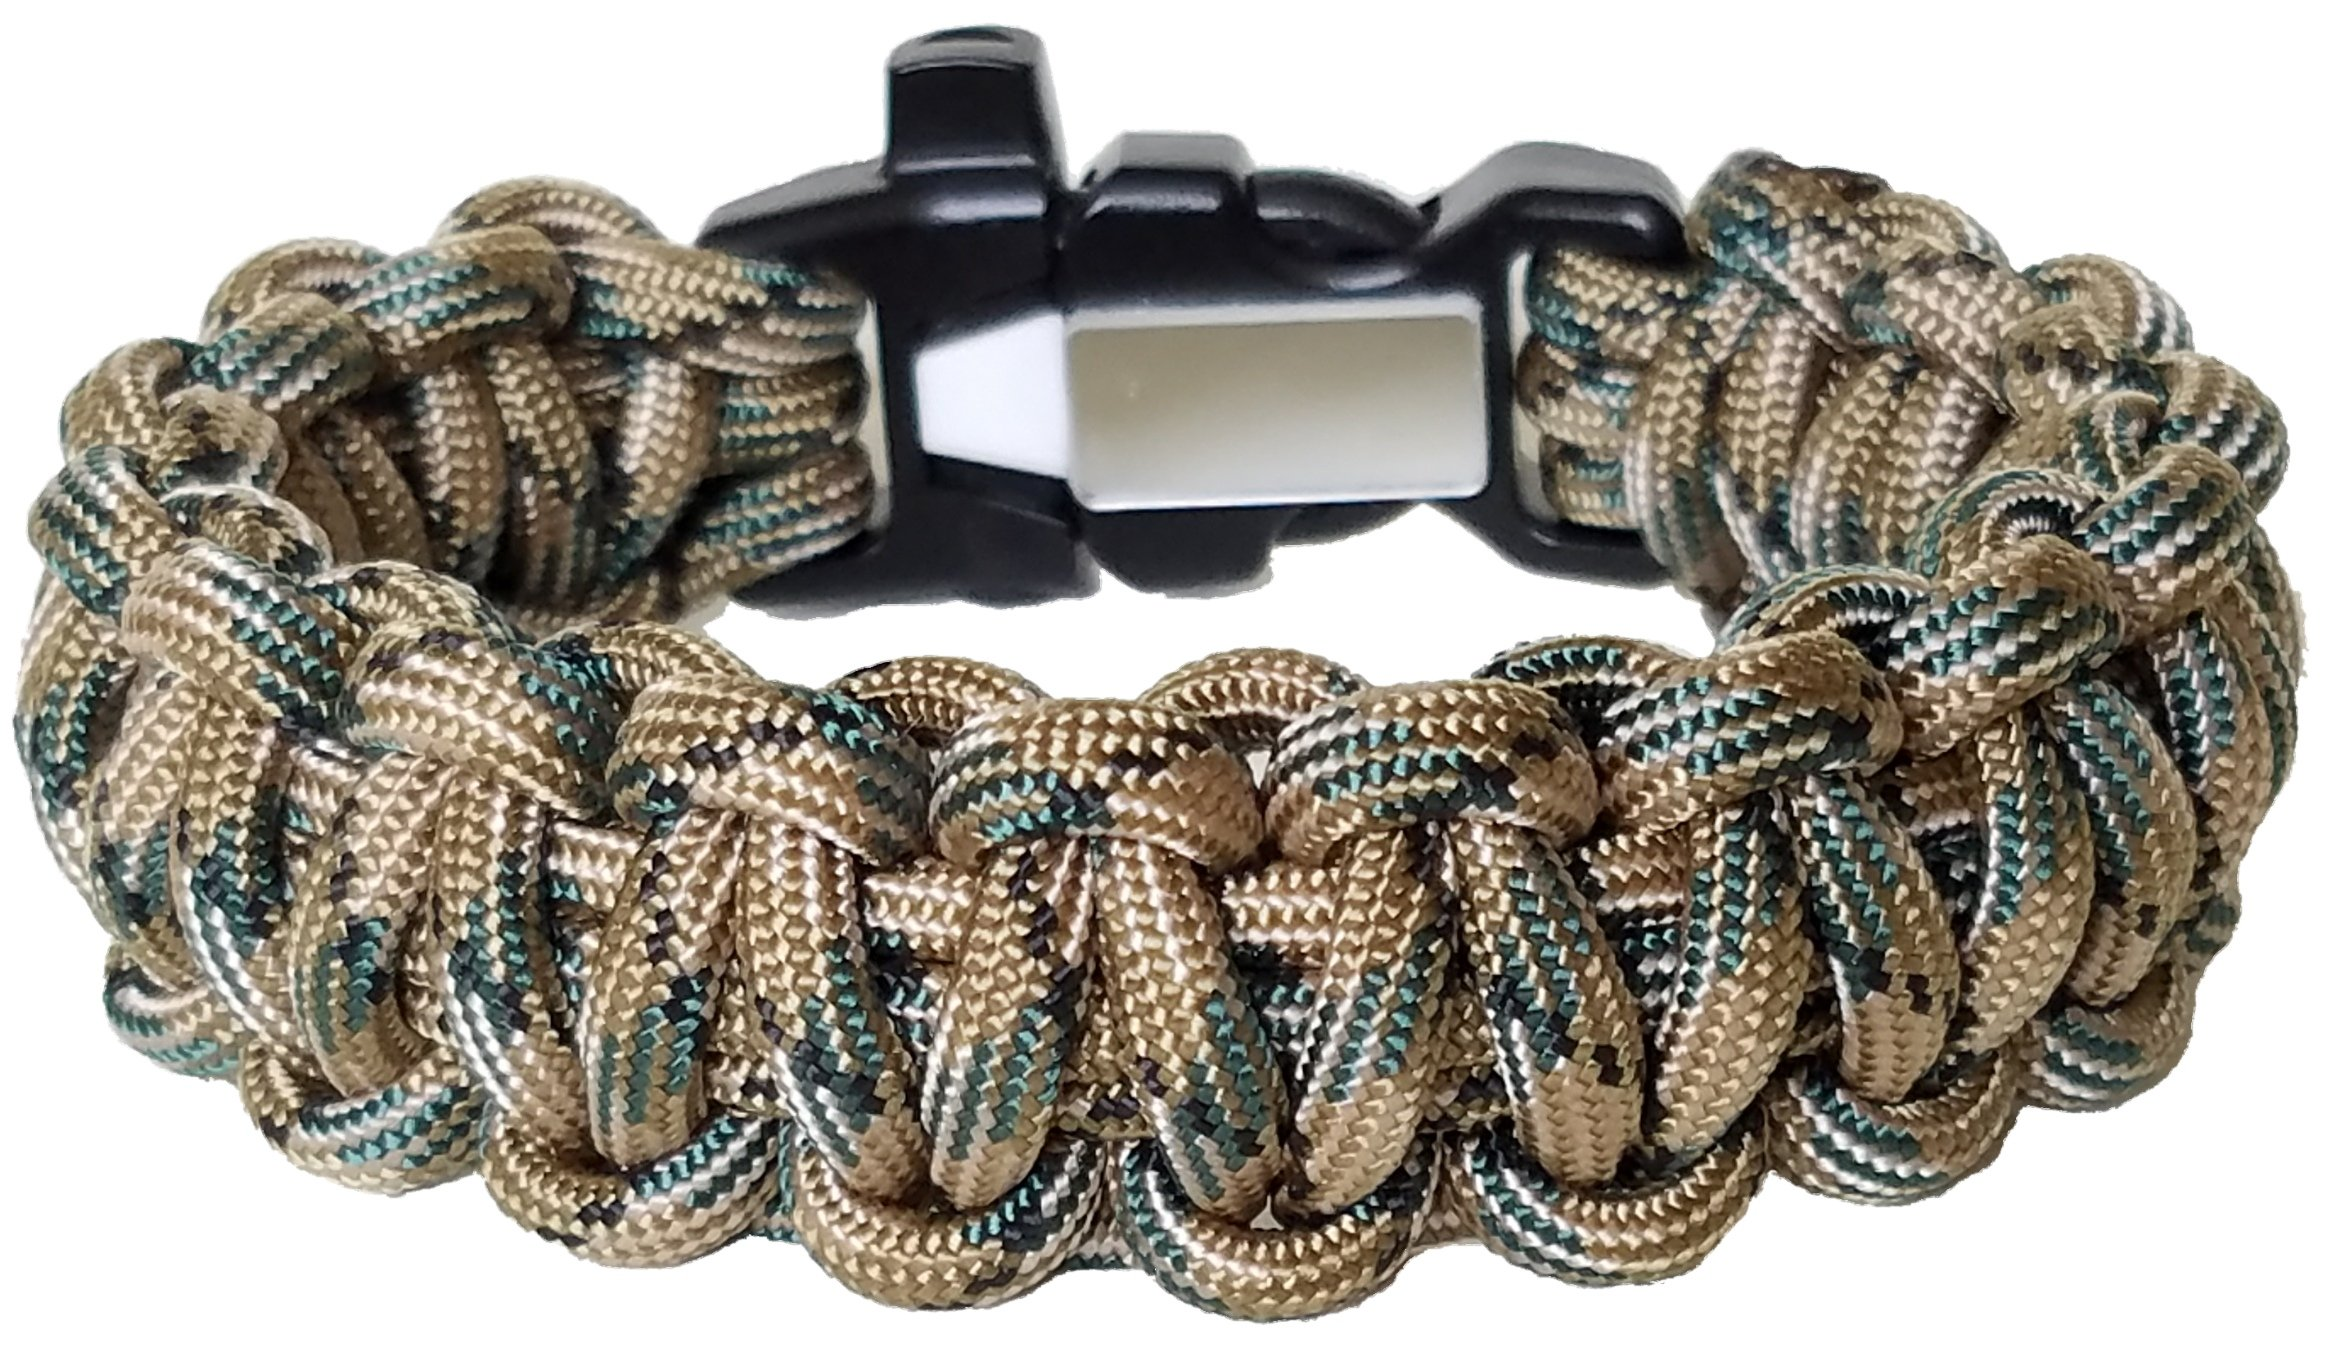 ParaOne- Paracord Bracelet | Premium Survival Bracelet With Firestarter Buckle, Whistle, Mirror, Snare Wire, Fire Tinder, Fishing Line | Made In The USA (Woodland, Large)